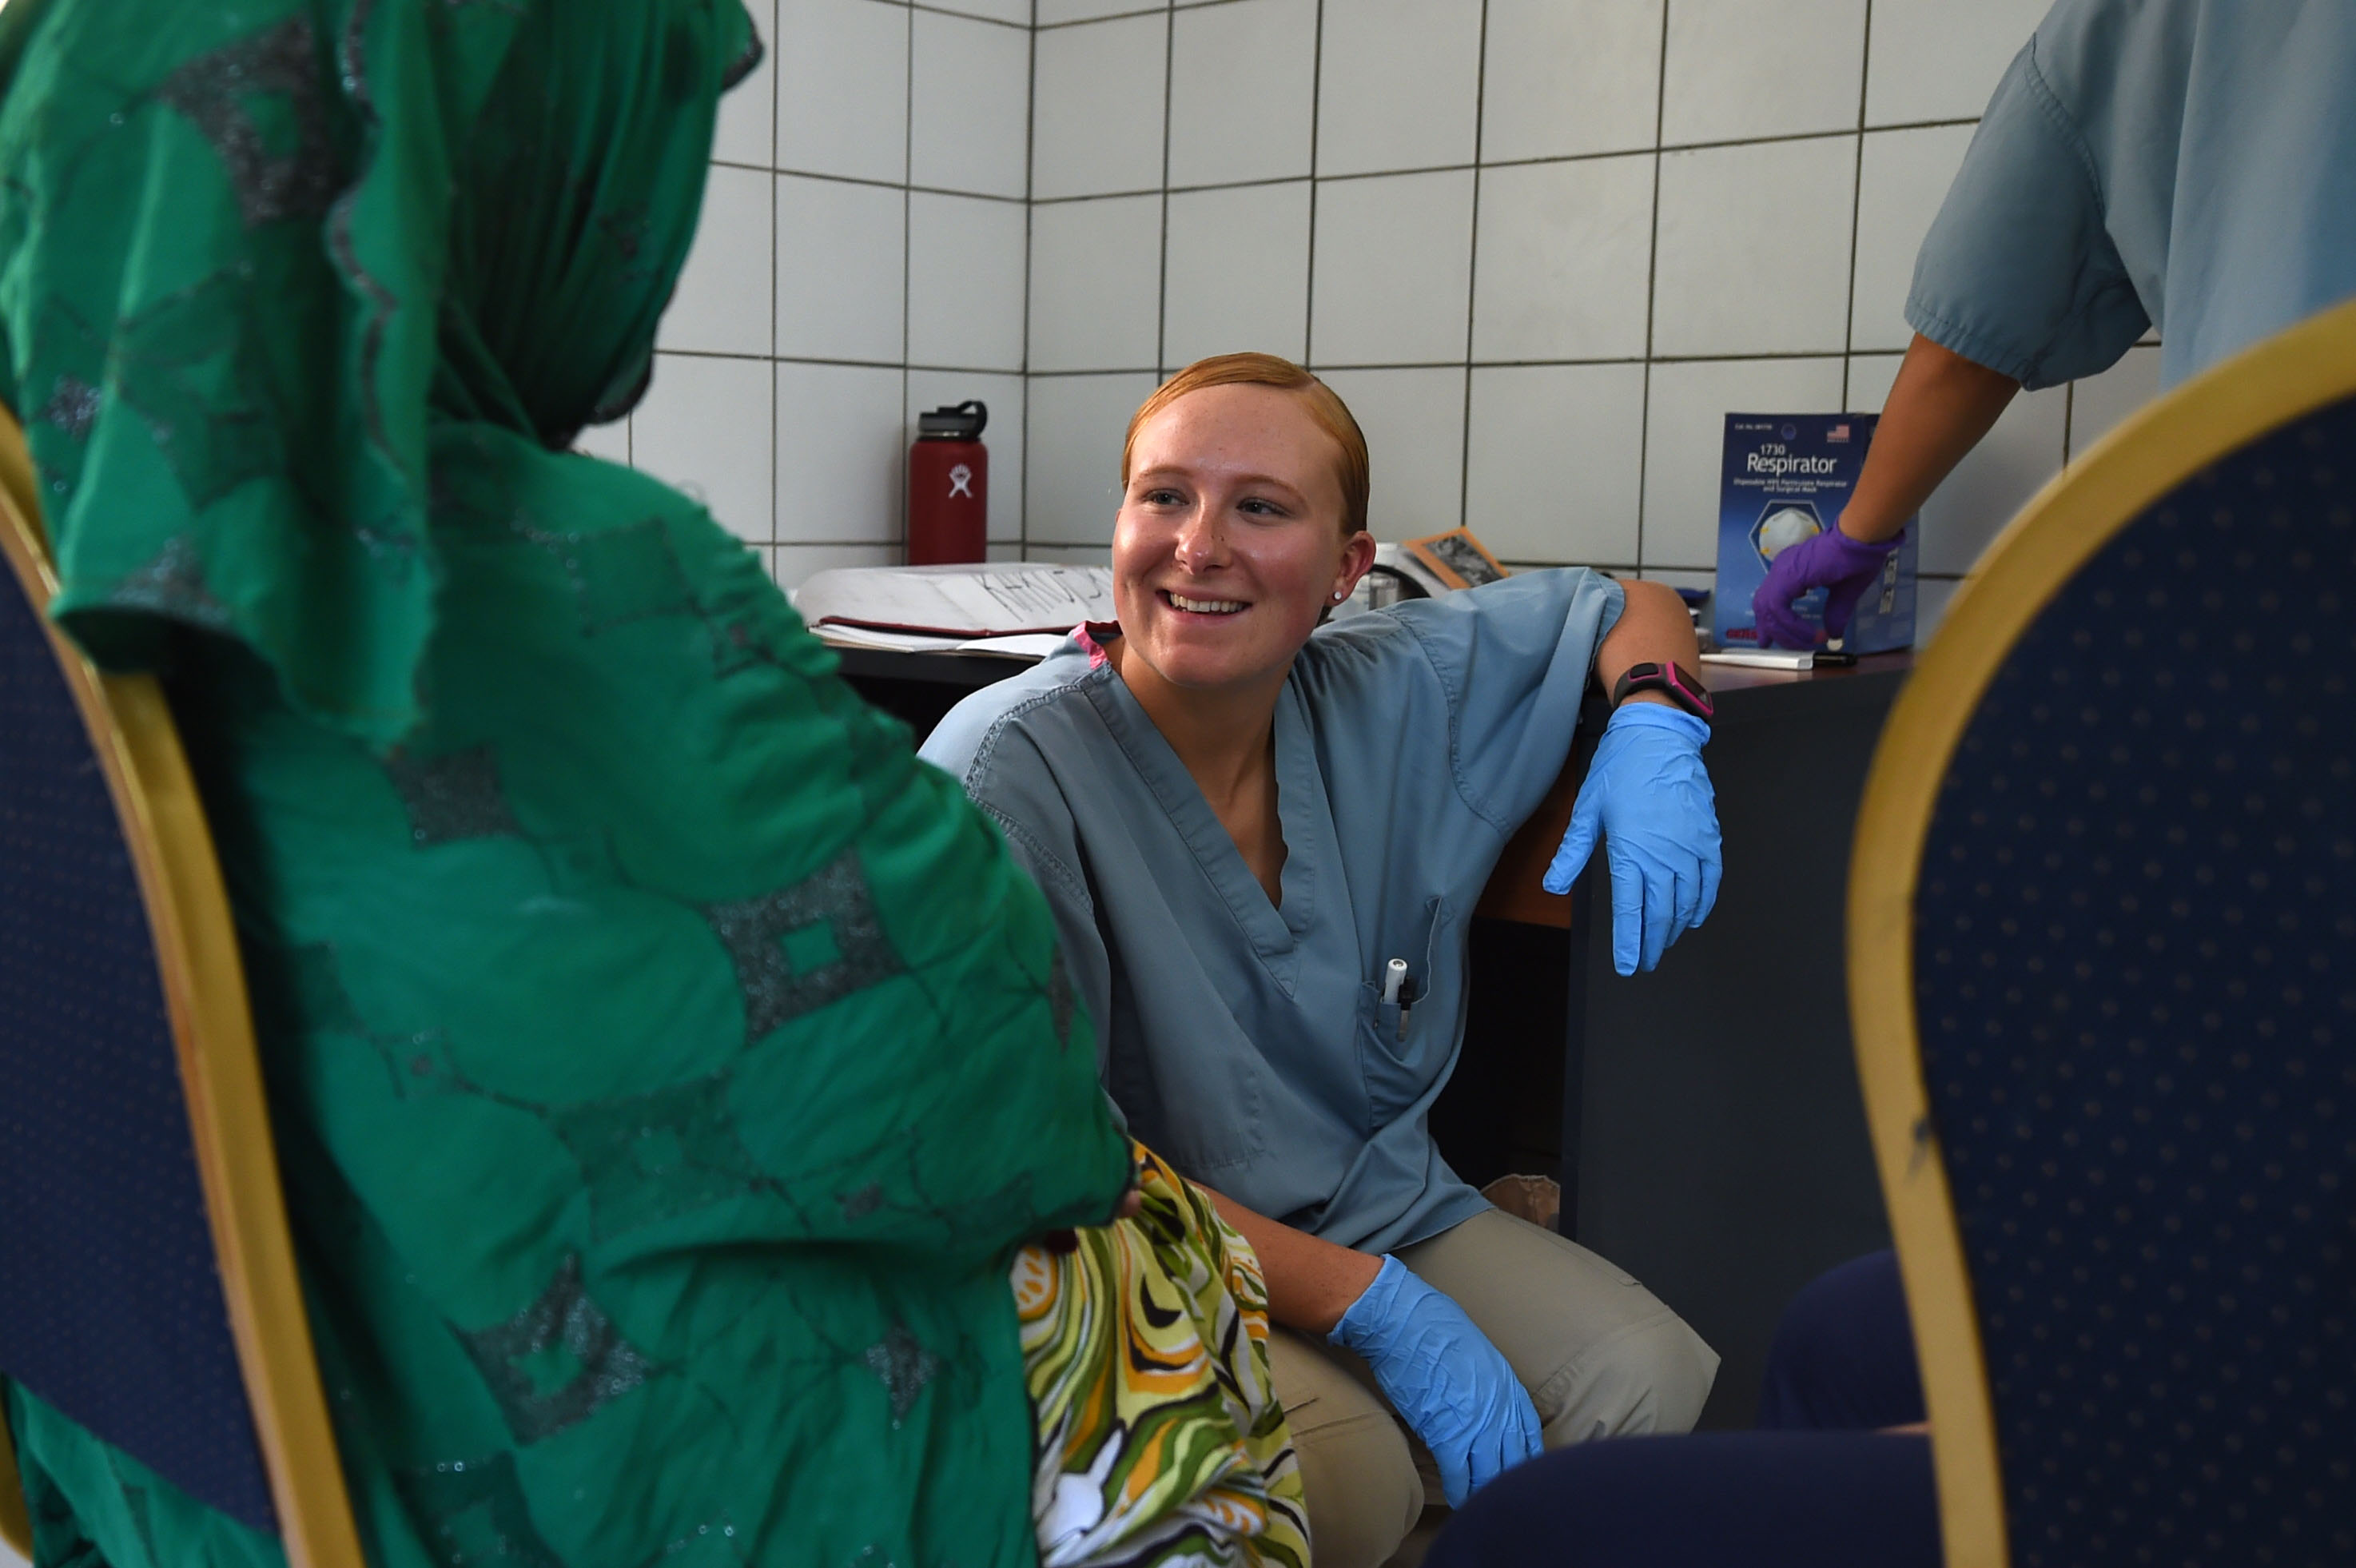 DIKHIL, Djibouti – U.S. Army Spc. Kristie Richardson, 403rd Civil Affairs Battalion medical assistant, completes a health assessment to patients during a medical civic action program at Dikhil, Djibouti, May 11, 2016. The MEDCAP brought together the 403rd CA BN with the Djibouti Ministry of Health and Cuban medical personnel for a two-day event to provide medical care and education. (U.S. Air Force photo by Staff Sgt. Tiffany DeNault)